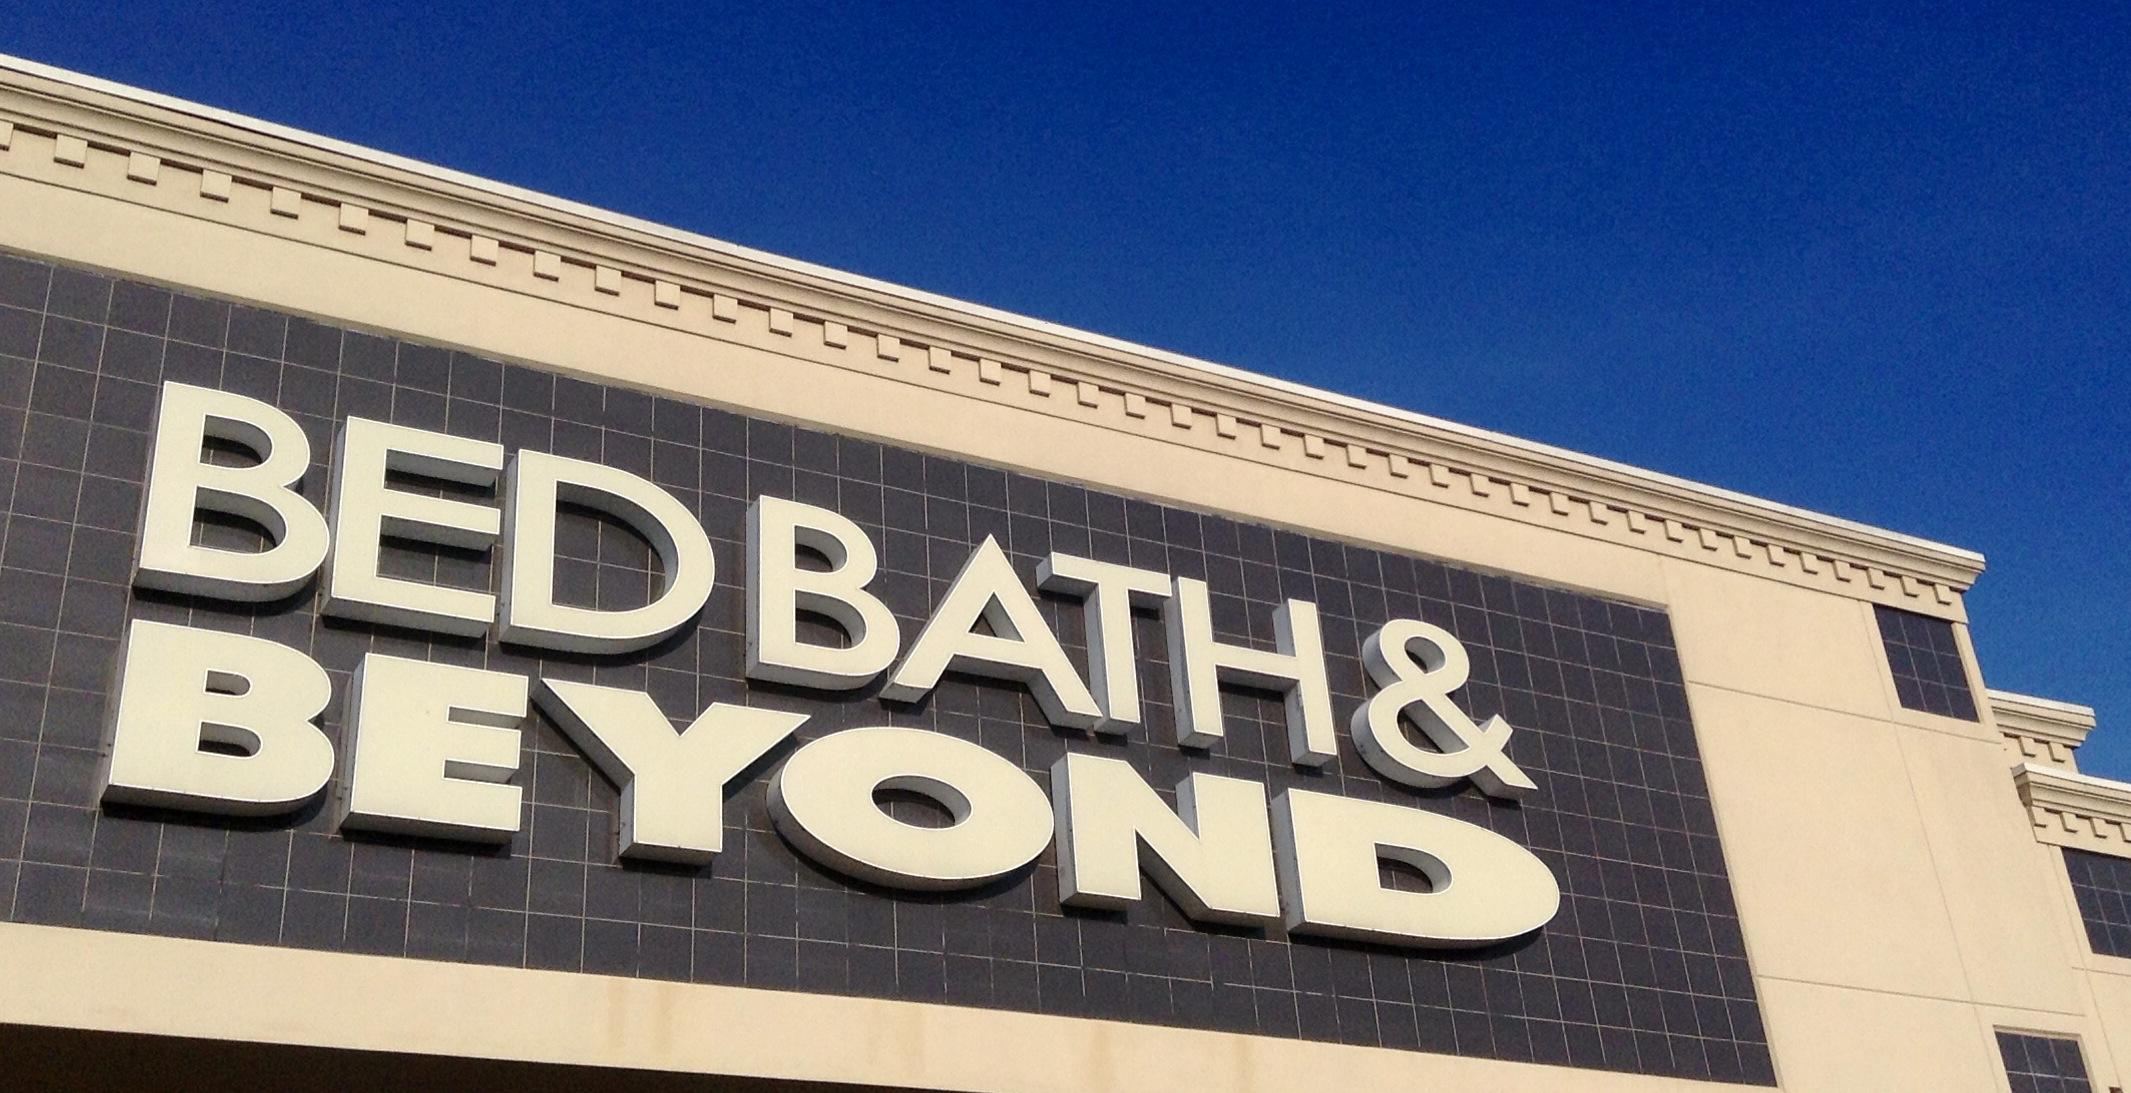 The latest Tweets from Bed Bath & Beyond (@BedBathBeyond). Welcome to our page where you'll find tips & solutions for your home and beyond. Need help? Send us a message! Share your finds with #bedbathandbeyondAccount Status: Verified.